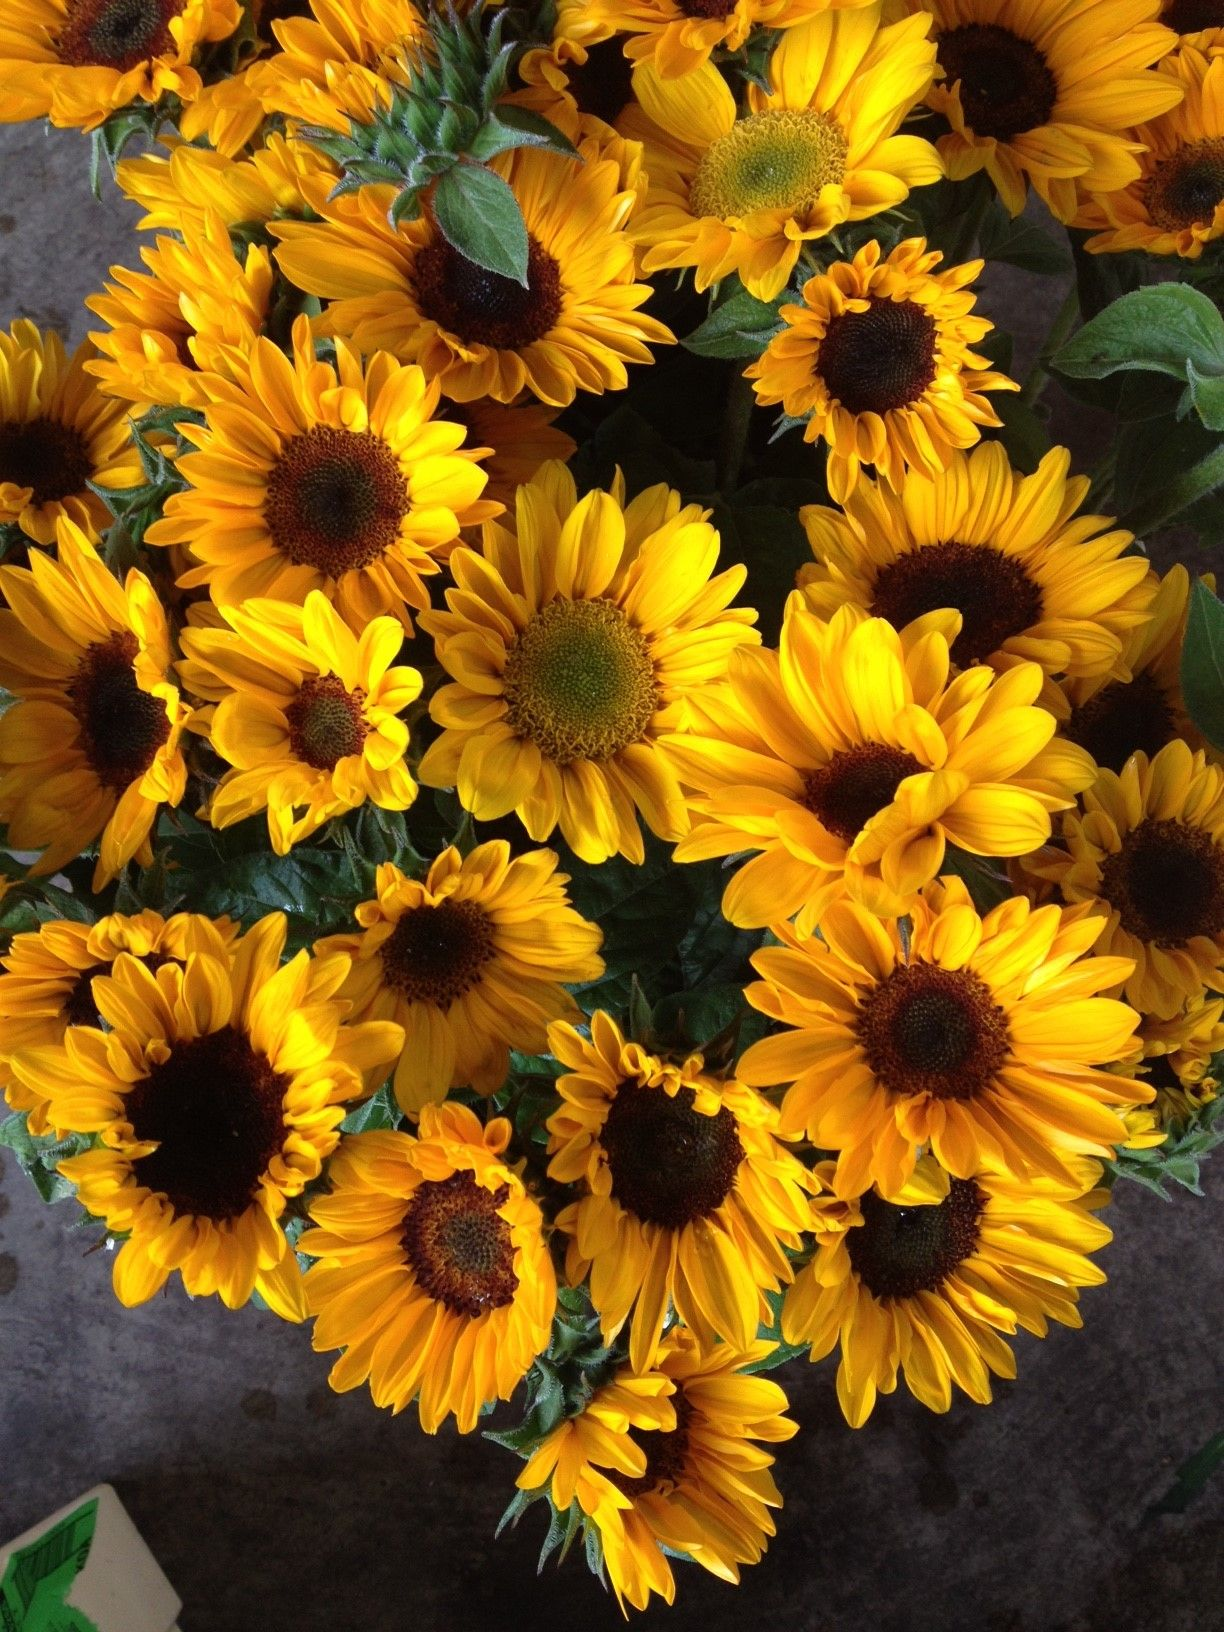 Small Sunflowers called Sonja...Sold in bunches of 10